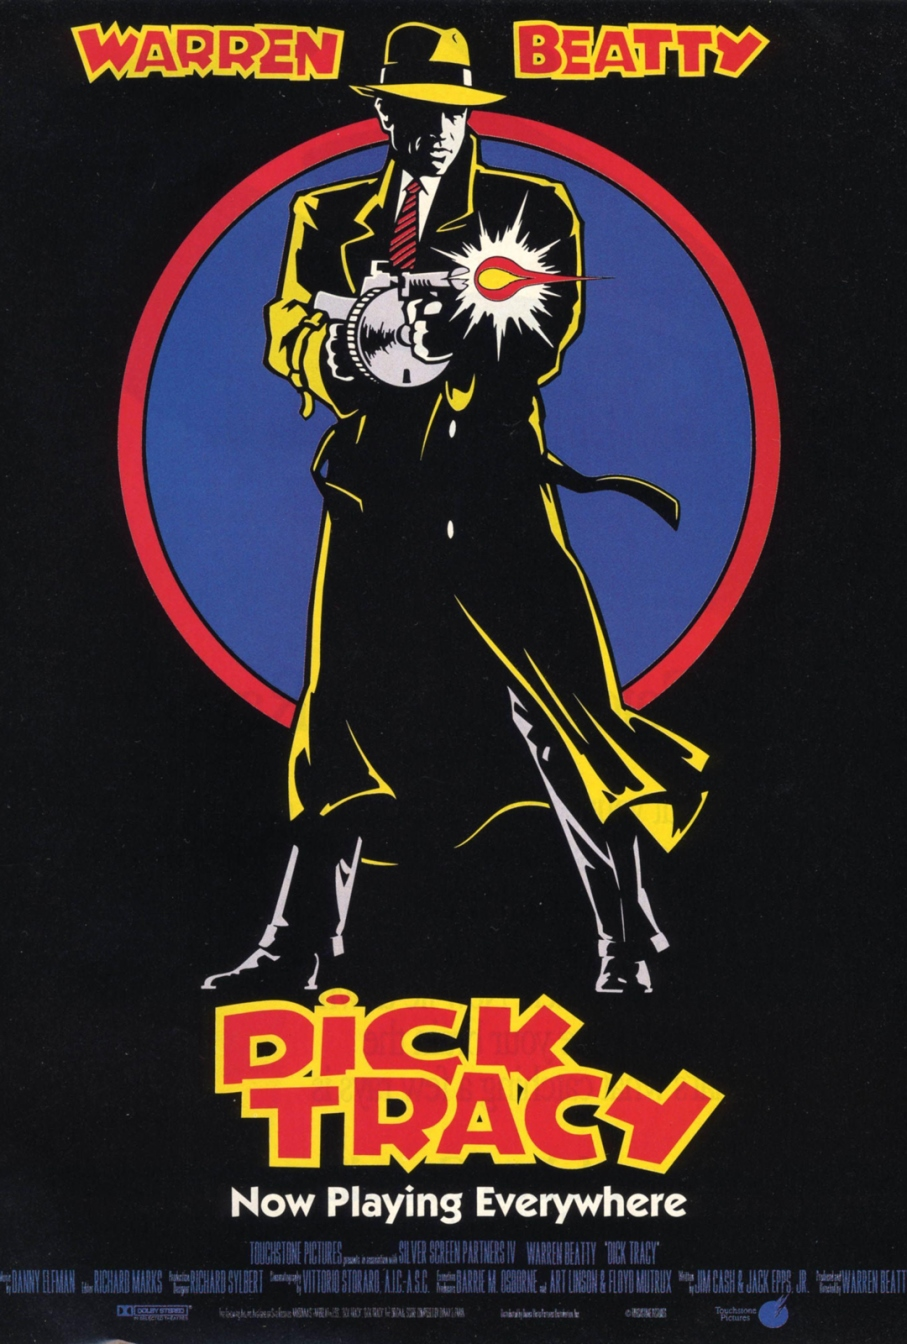 Dick Tracy (1990) - Directed by: Warren BeattyStarring: Warren Beatty, Charlie Korsmo, Glenne Headly, Al Pacino, Madonna, Dustin Hoffman, Mandy Patinkin, Kathy Bates, Dick Van Dyke, James CaanRated: PGRunning Time: 1 h 45 mTMM Score: 4 stars out of 5STRENGTHS: Style, Direction, Makeup and Production Design, Acting, FunWEAKNESSES: Not For Everyone